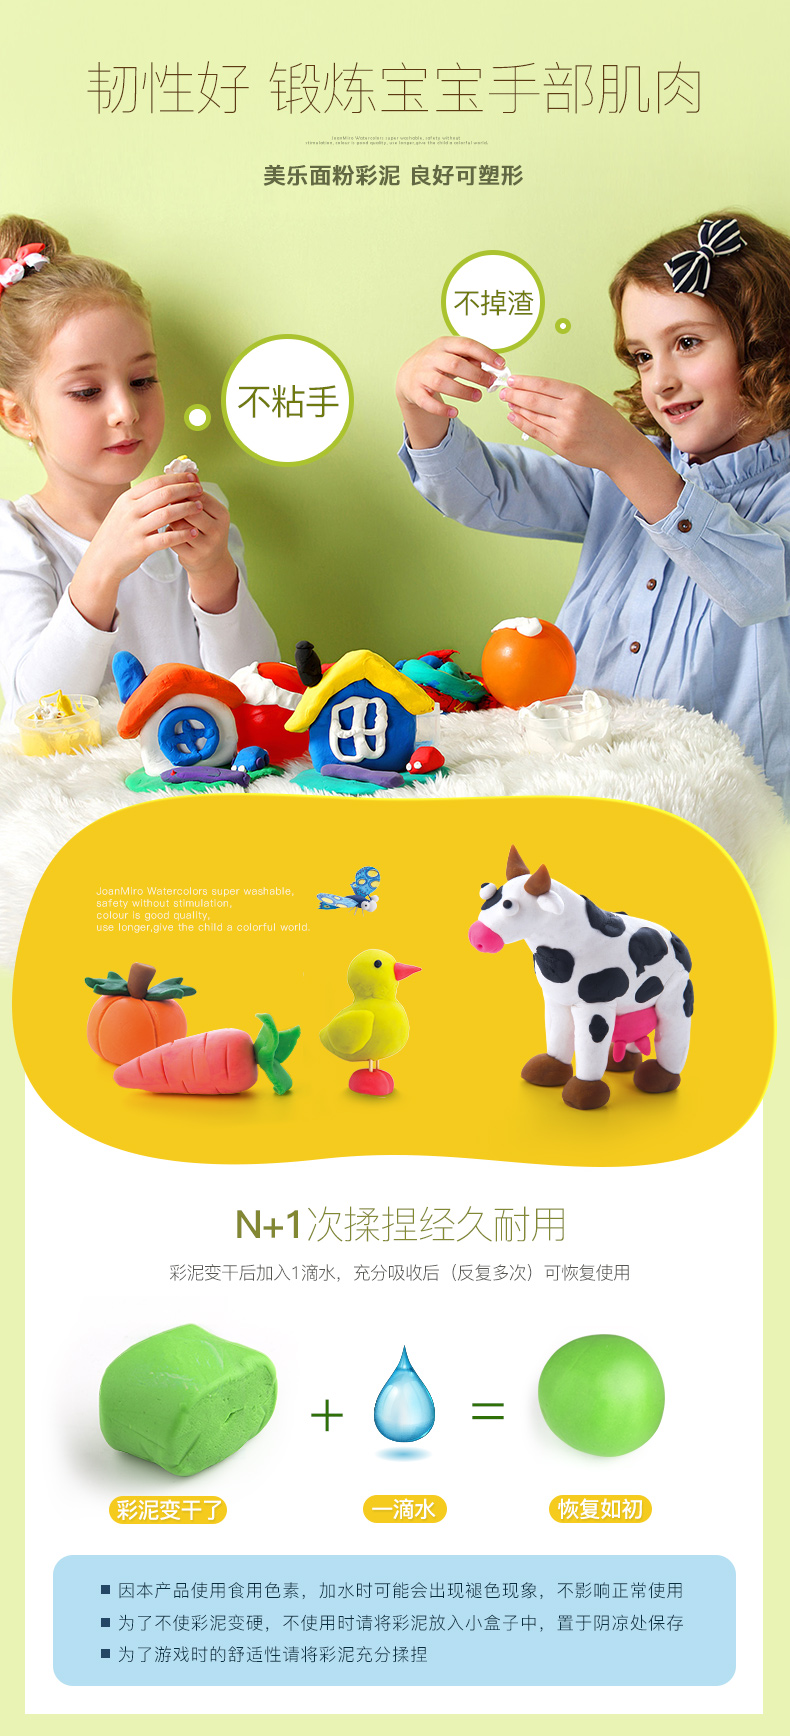 Non-Toxic; Assorted Colors; Air Dry Modeling Magic Clay; Super Soft; Ultra-light Molding Clay for Kids